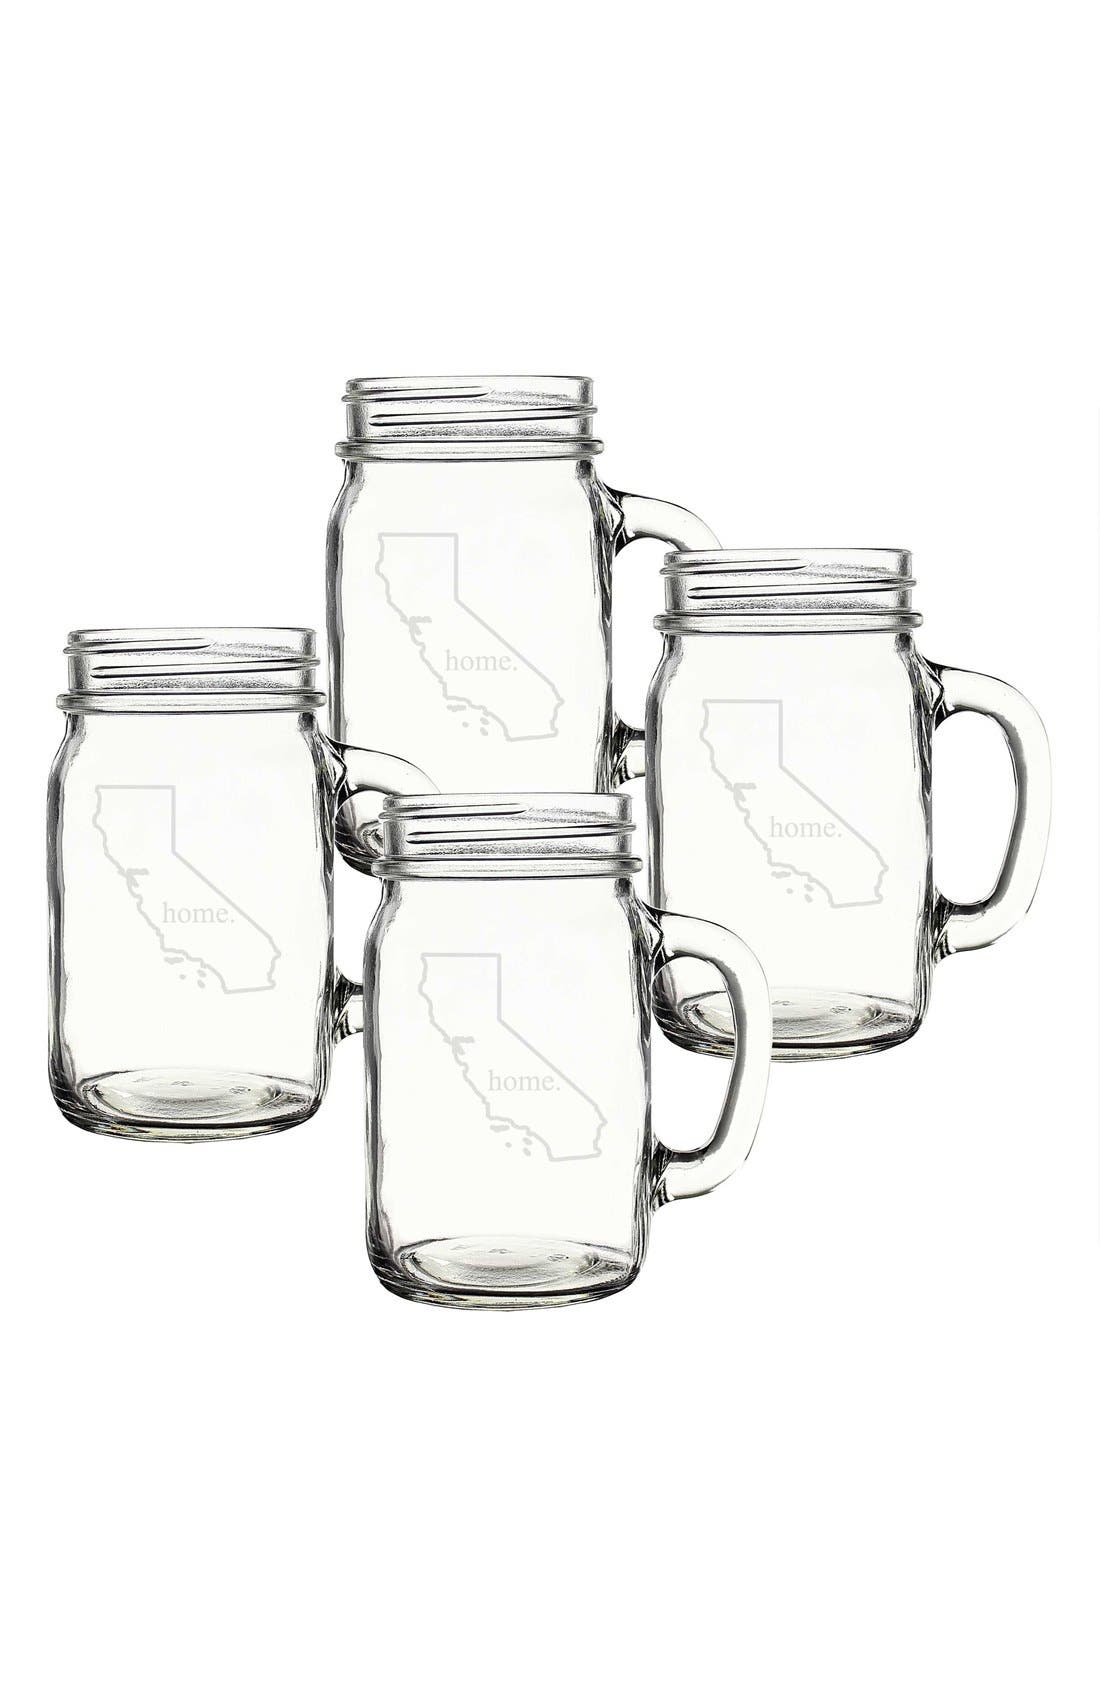 Alternate Image 1 Selected - Cathy's Concepts 'Home State' Glass Drinking Jars with Handles (Set of 4)